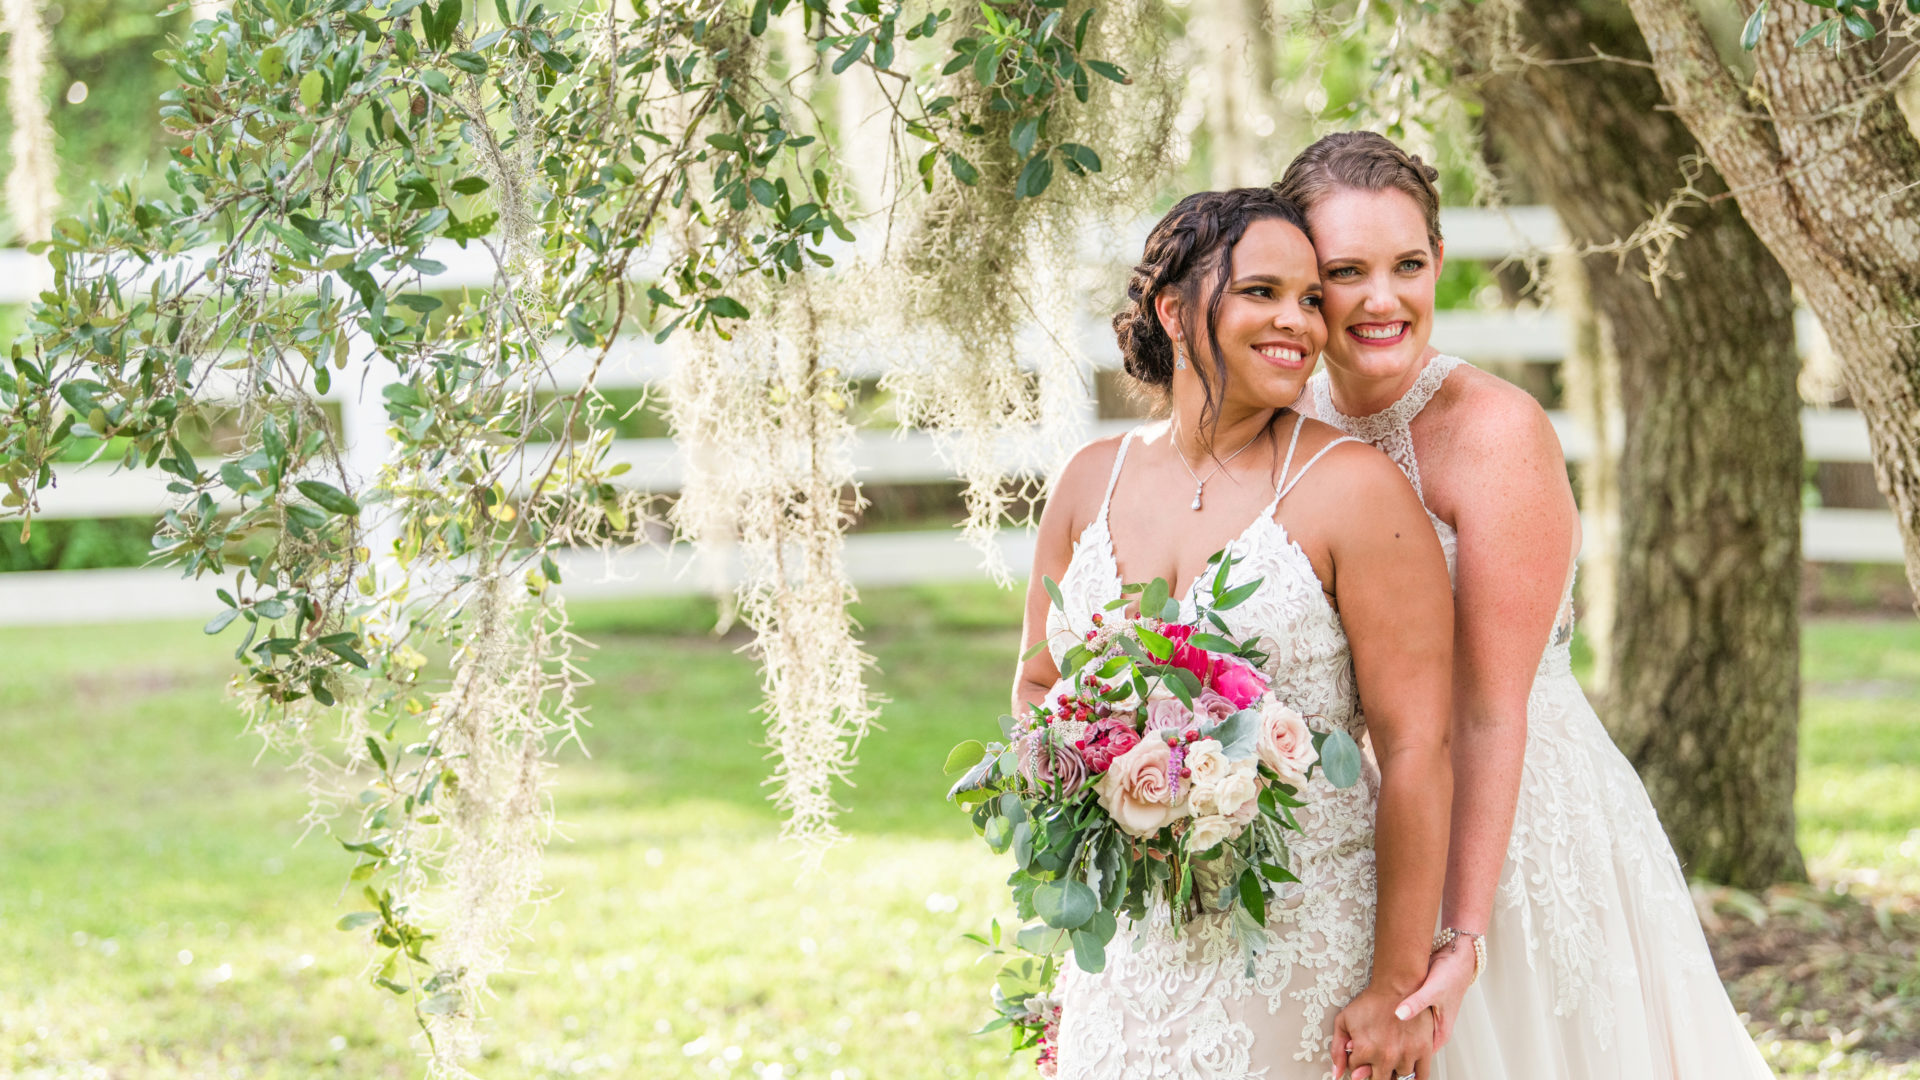 Gorgeous bride and bride on their wedding day